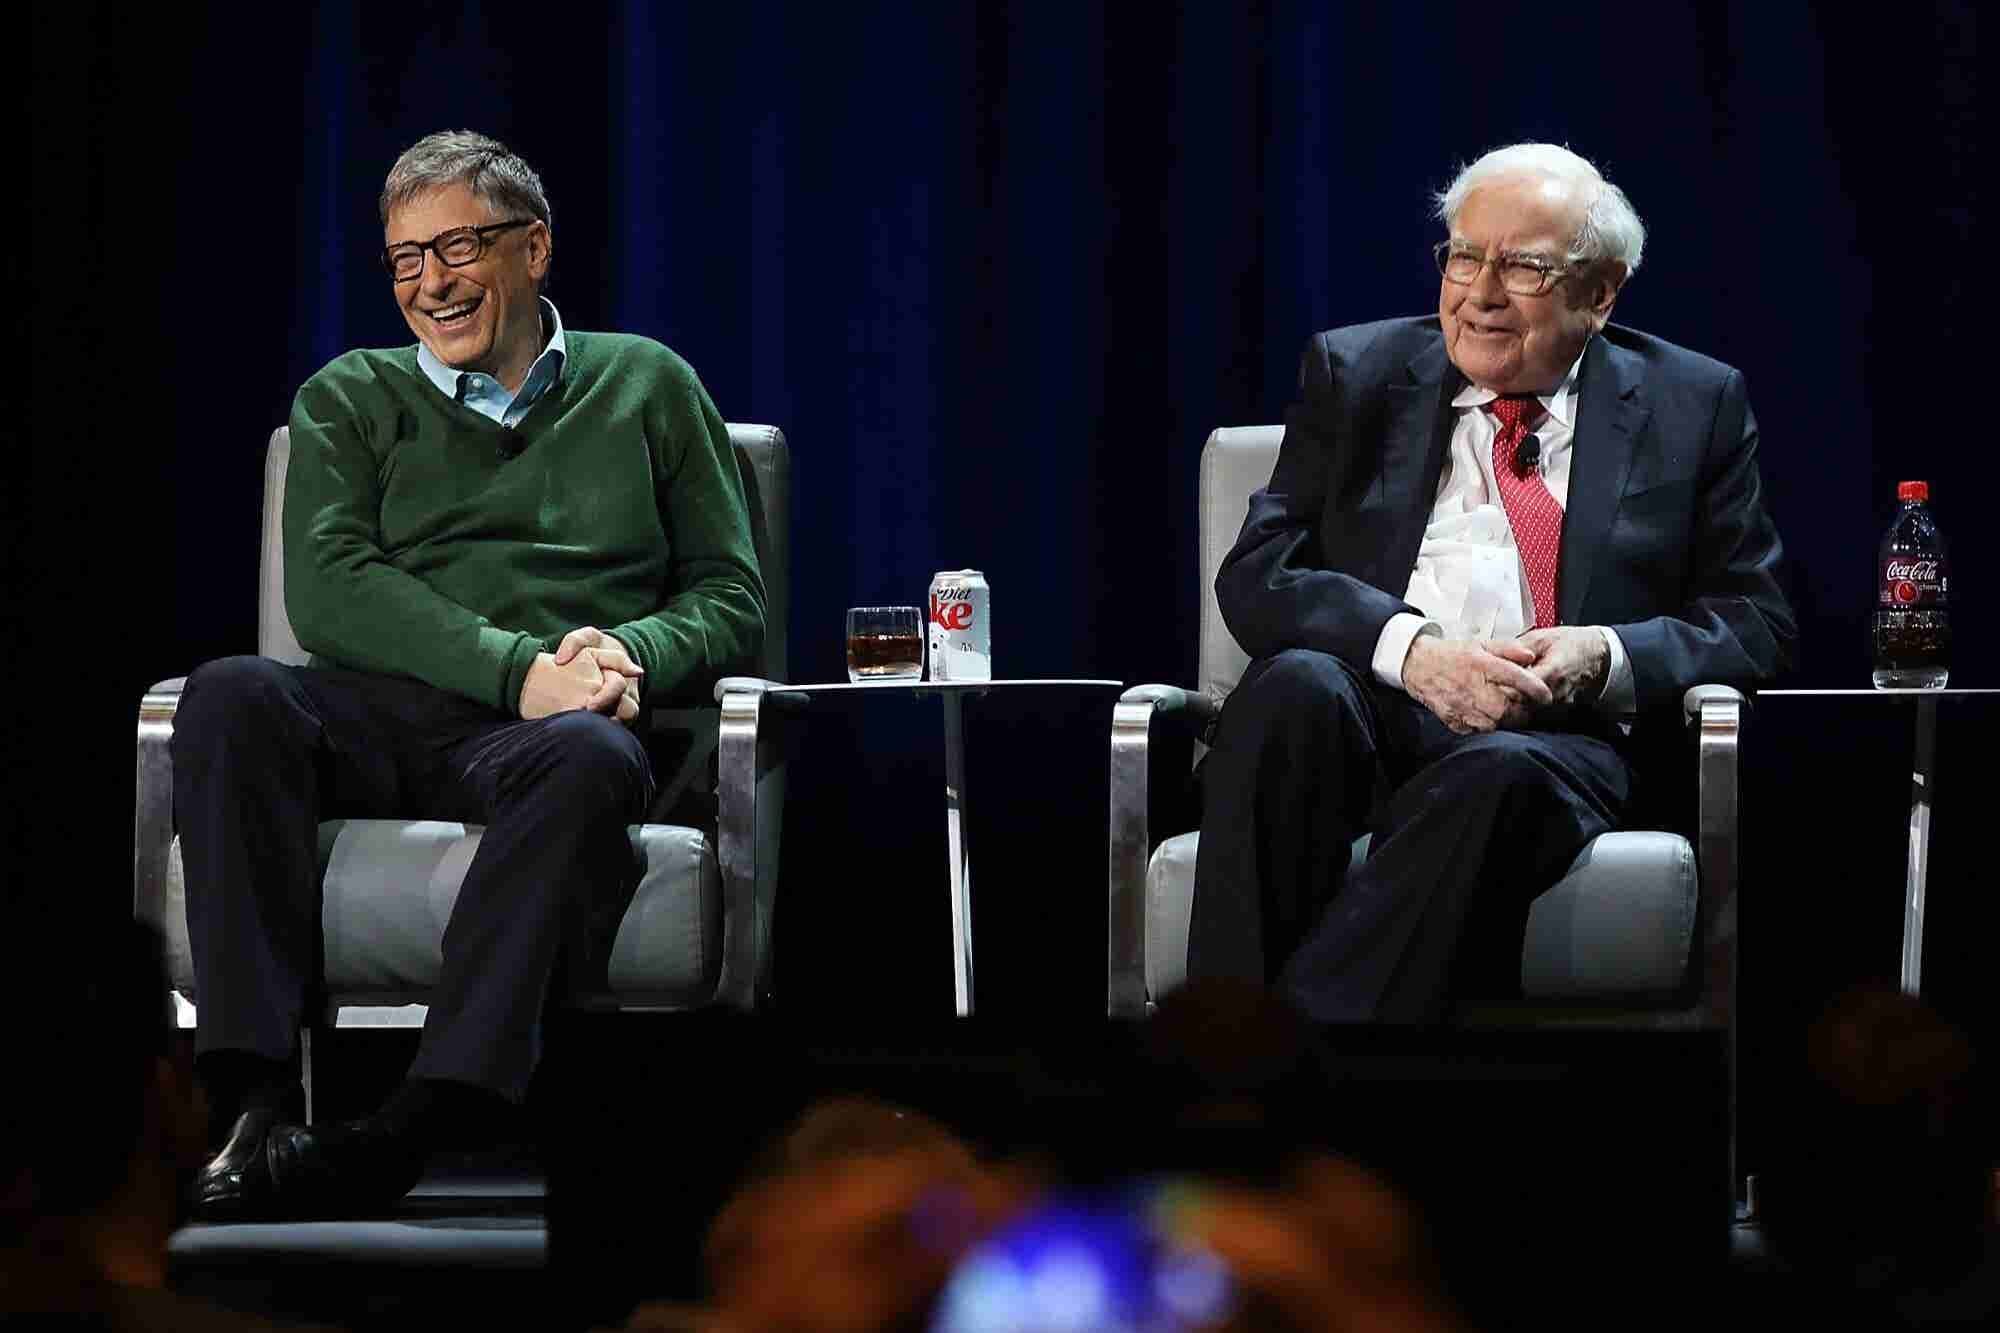 Bill Gates and Warren Buffett Have This Exclusive McDonald's Perk -- And You Could, Too. 3 Things to Know Today.